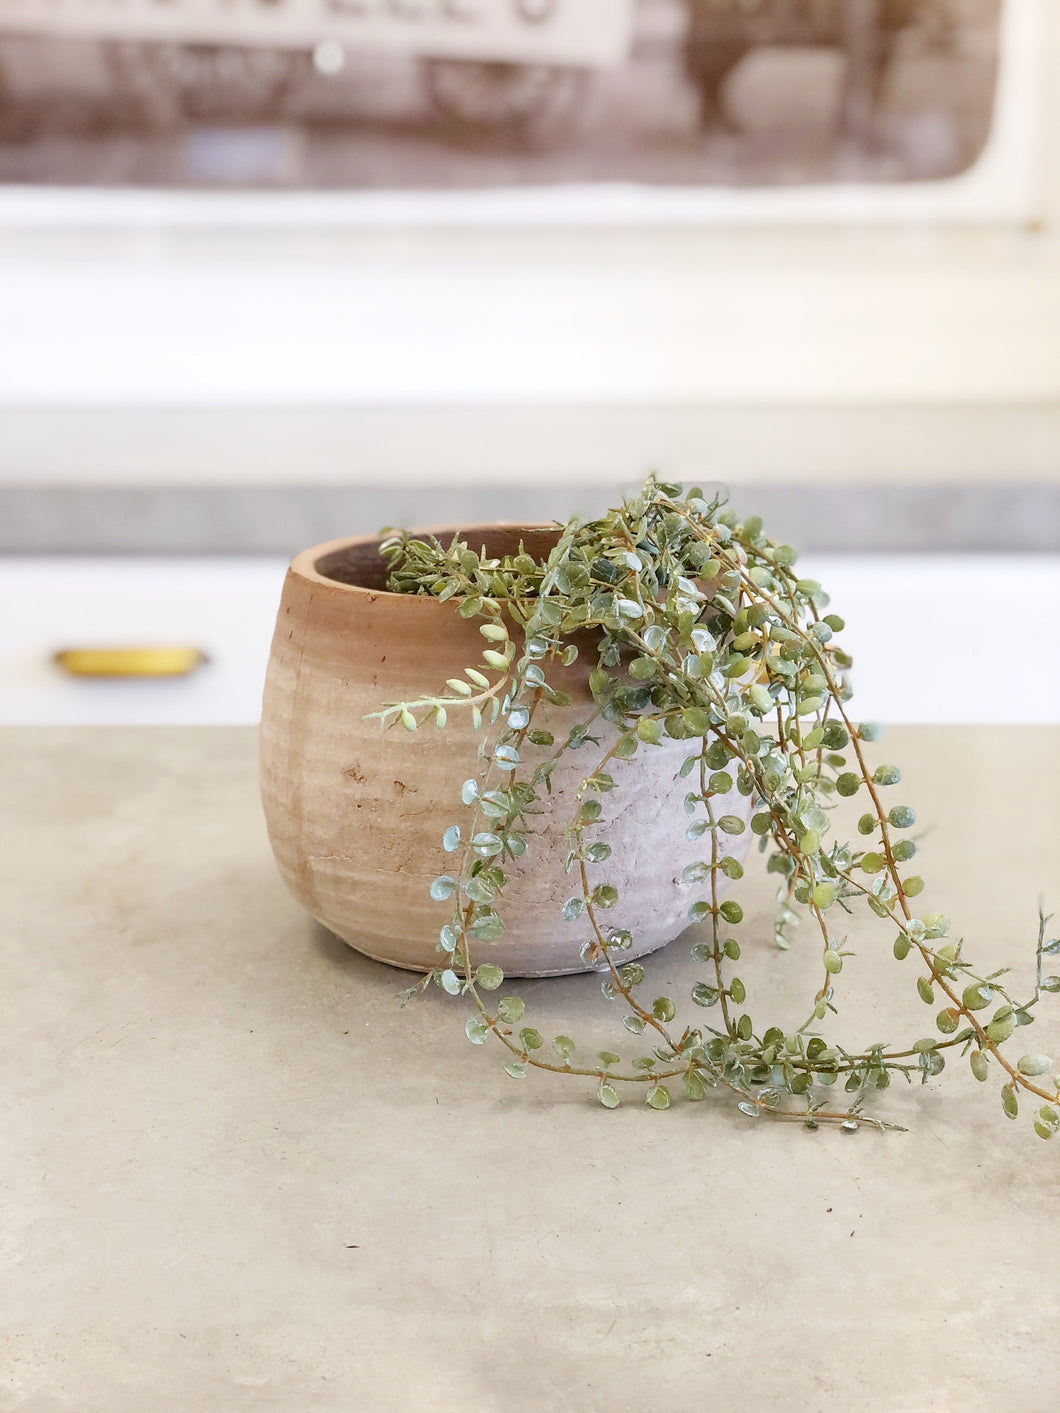 Whitewashed Terra Cotta Planter